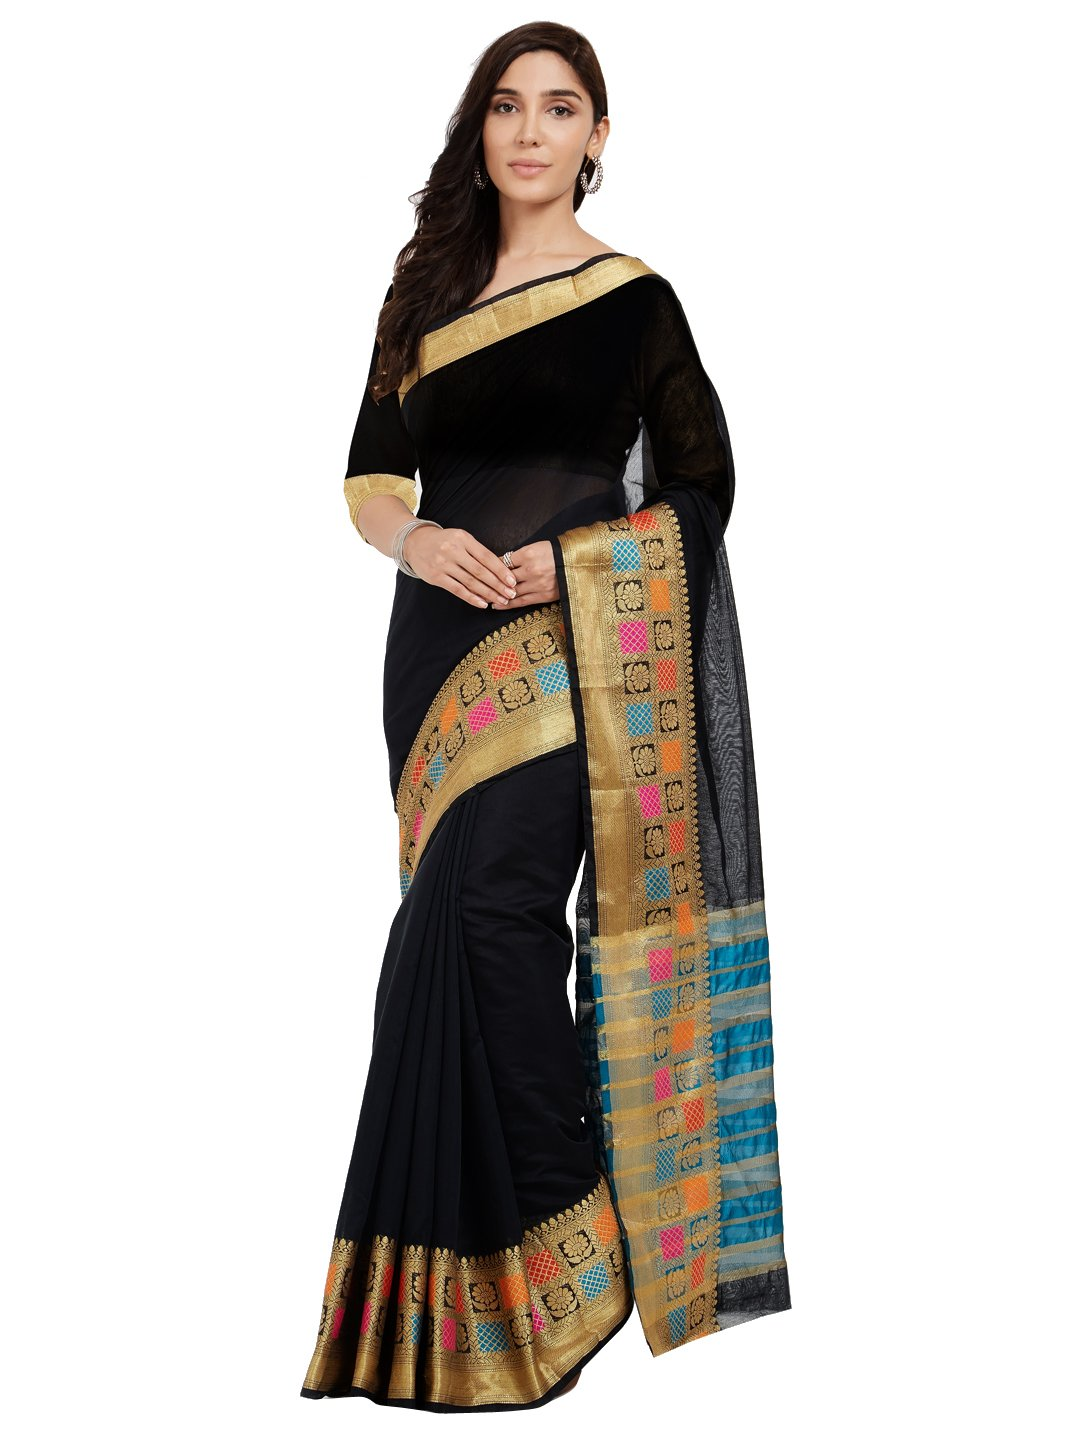 Viva N Diva Sarees for Women's Black Cotton Art Silk Saree with Un-Stiched Blouse Piece,Bollywood Sari